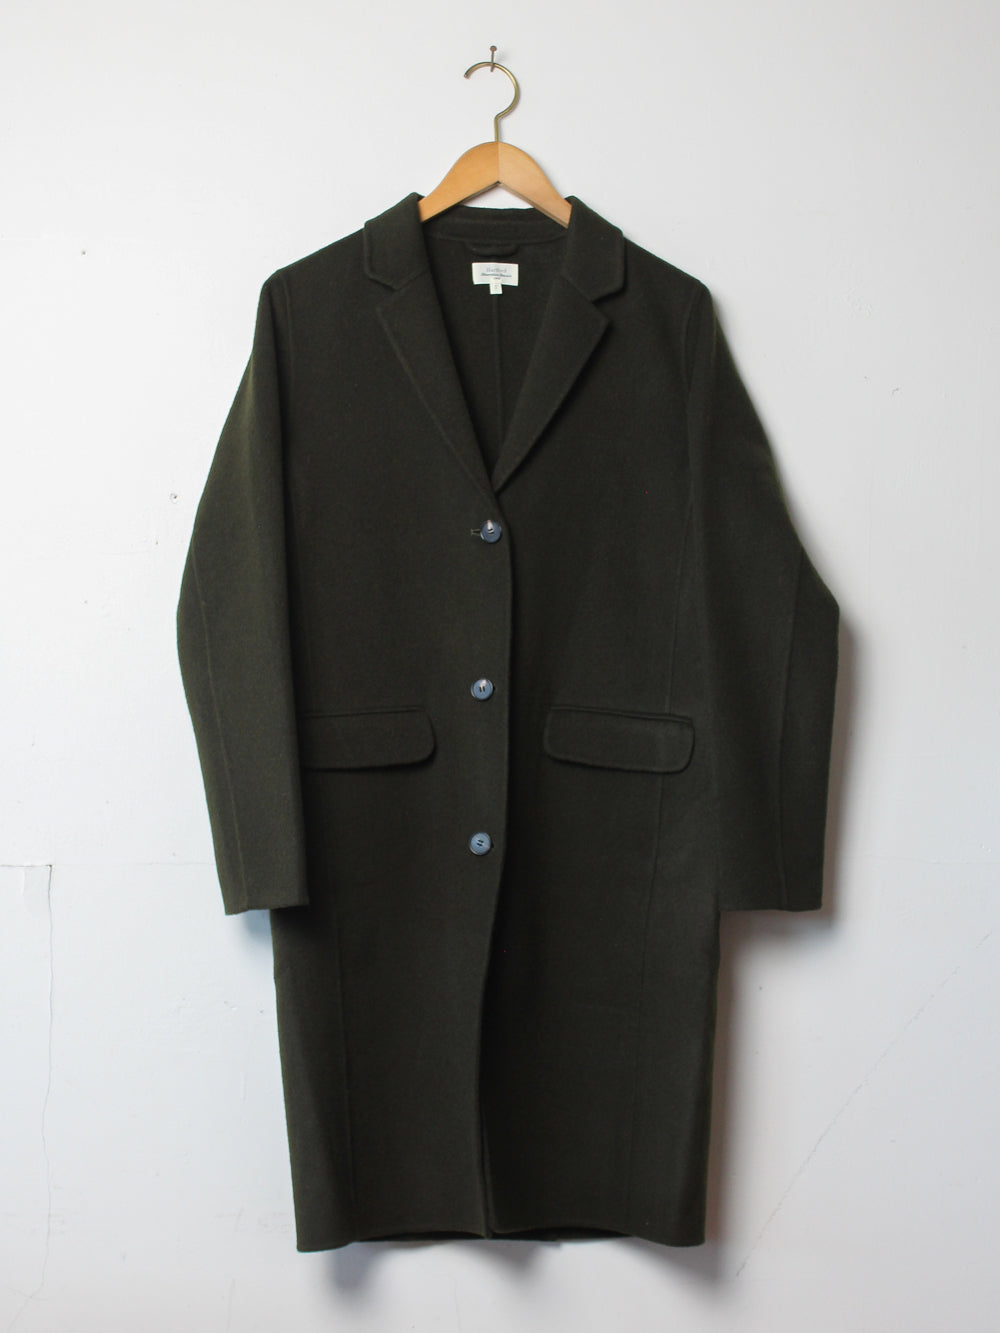 hartford voilas coat in army